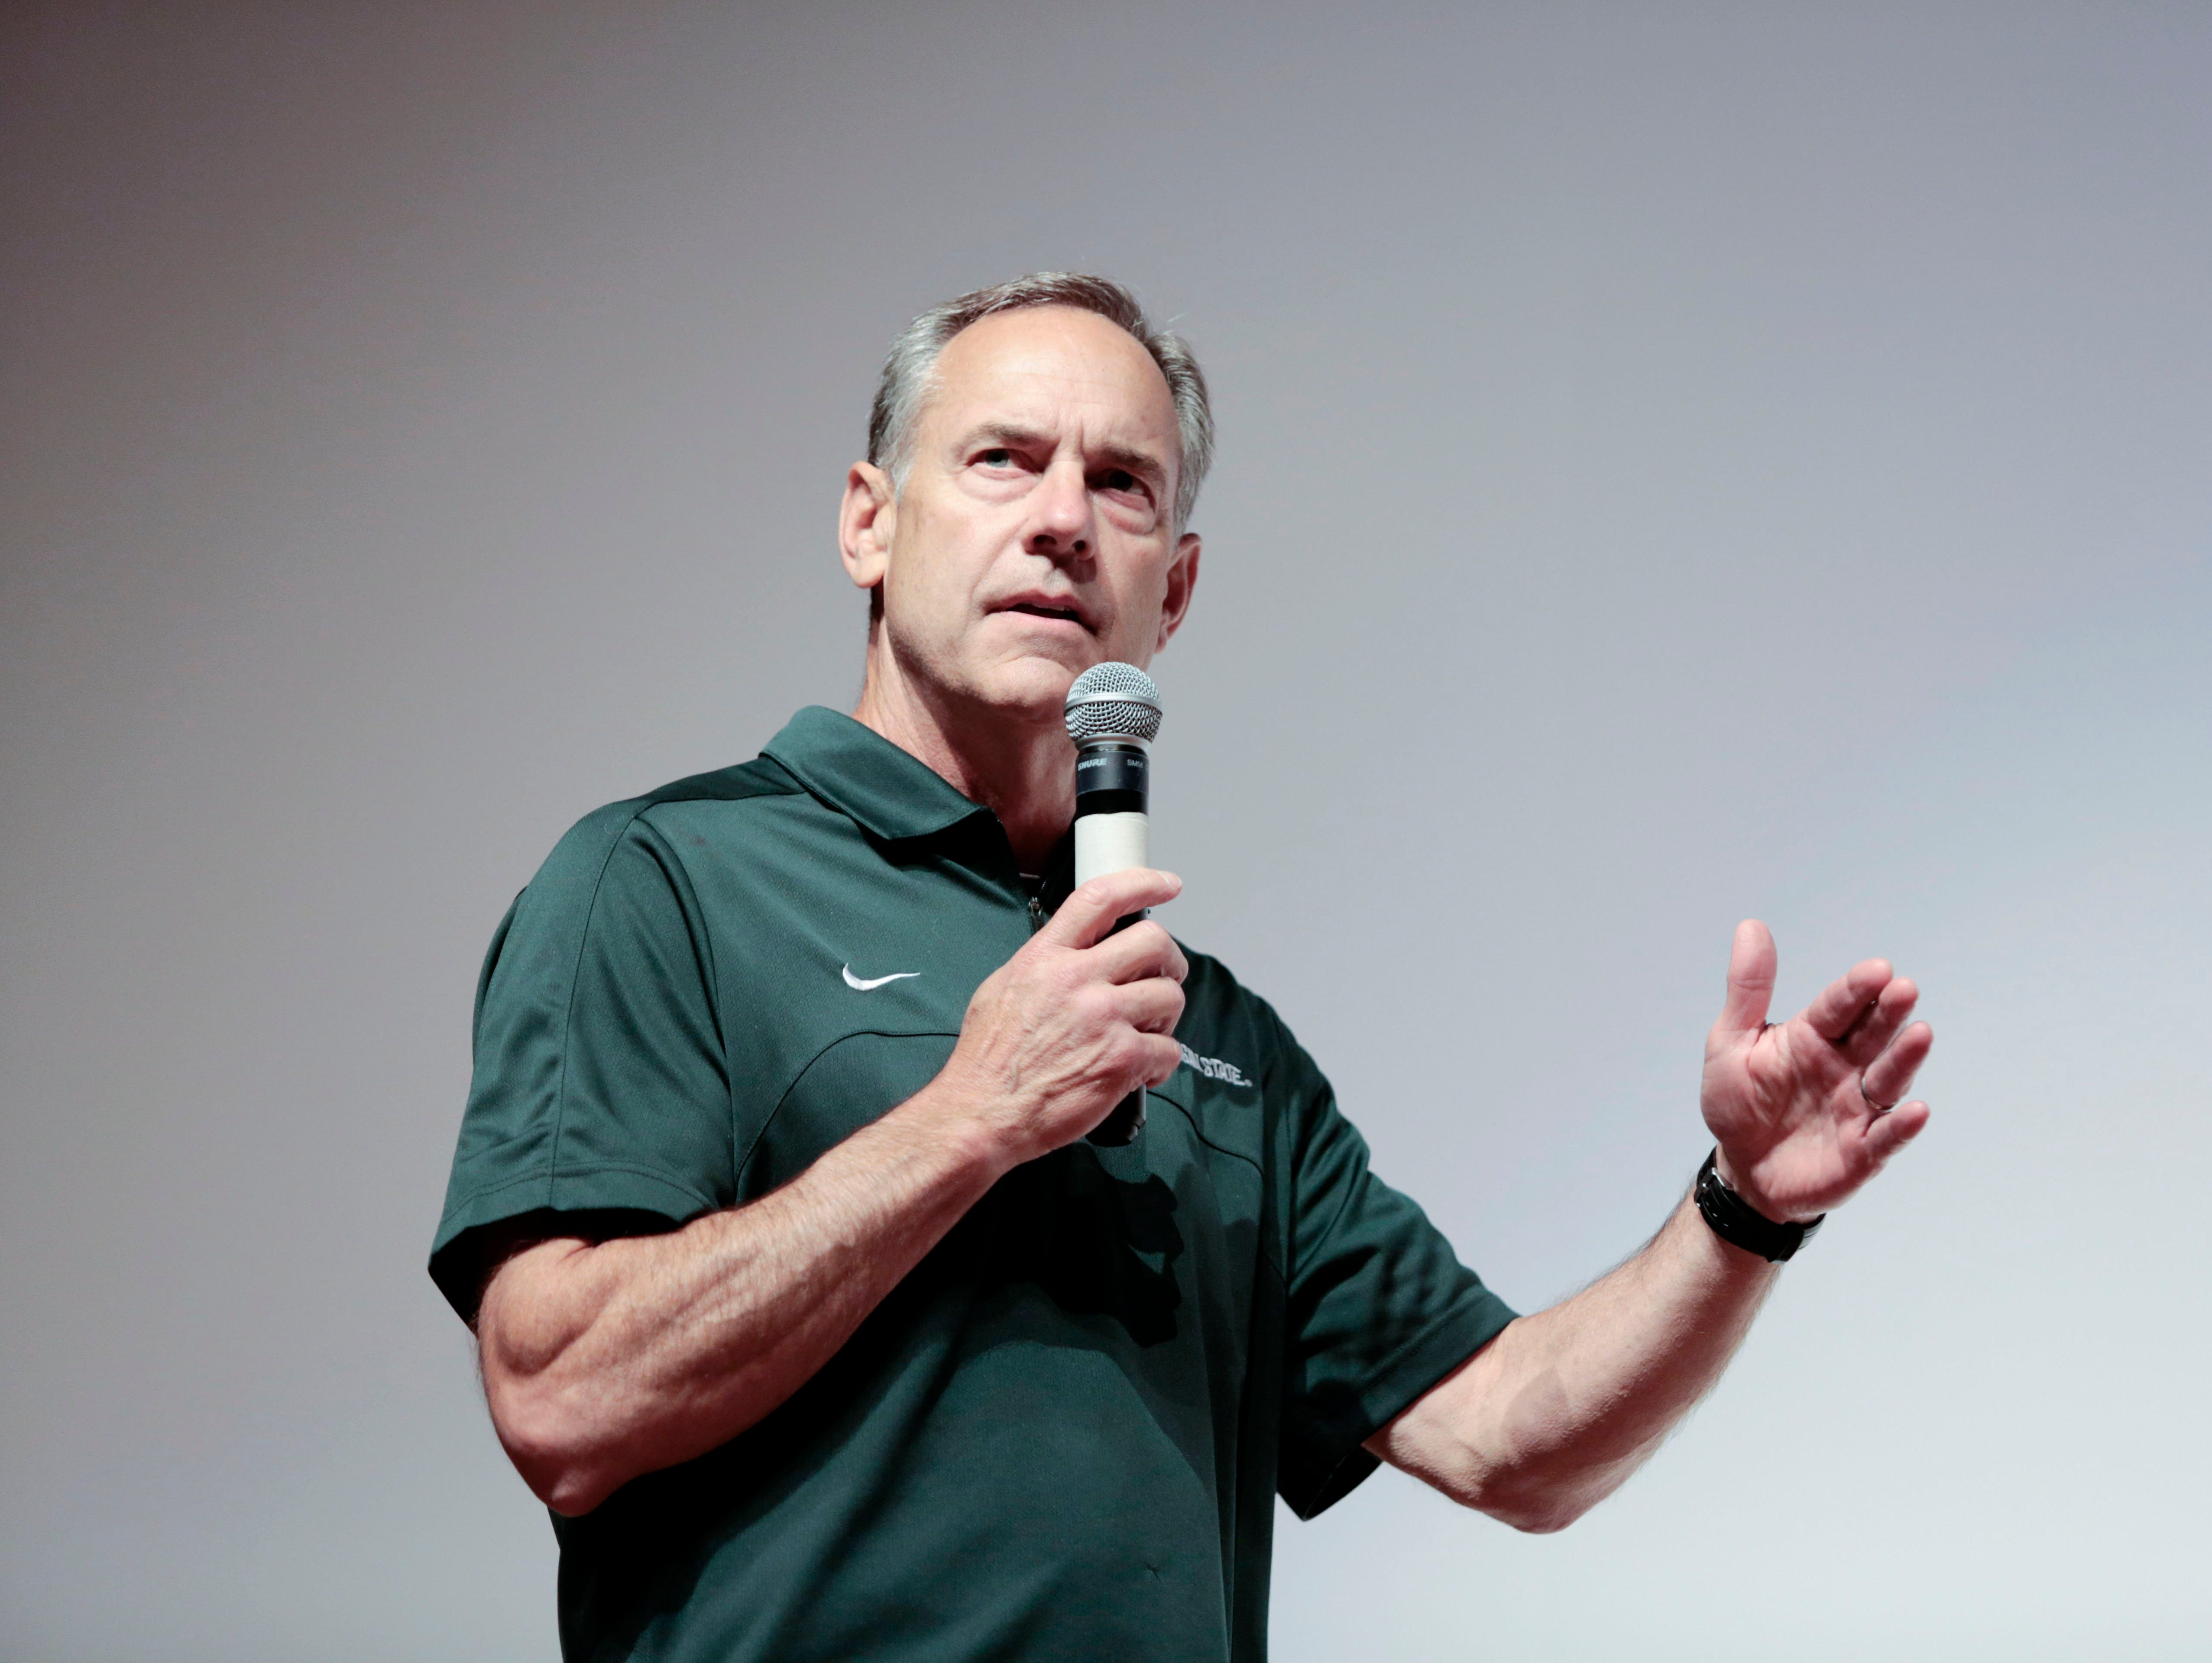 Michigan State football coach Mark Dantonio speaks to the athletes at the Sound Mind Sound Body football camp June 12, 2015, at Dakota High School in Macomb.